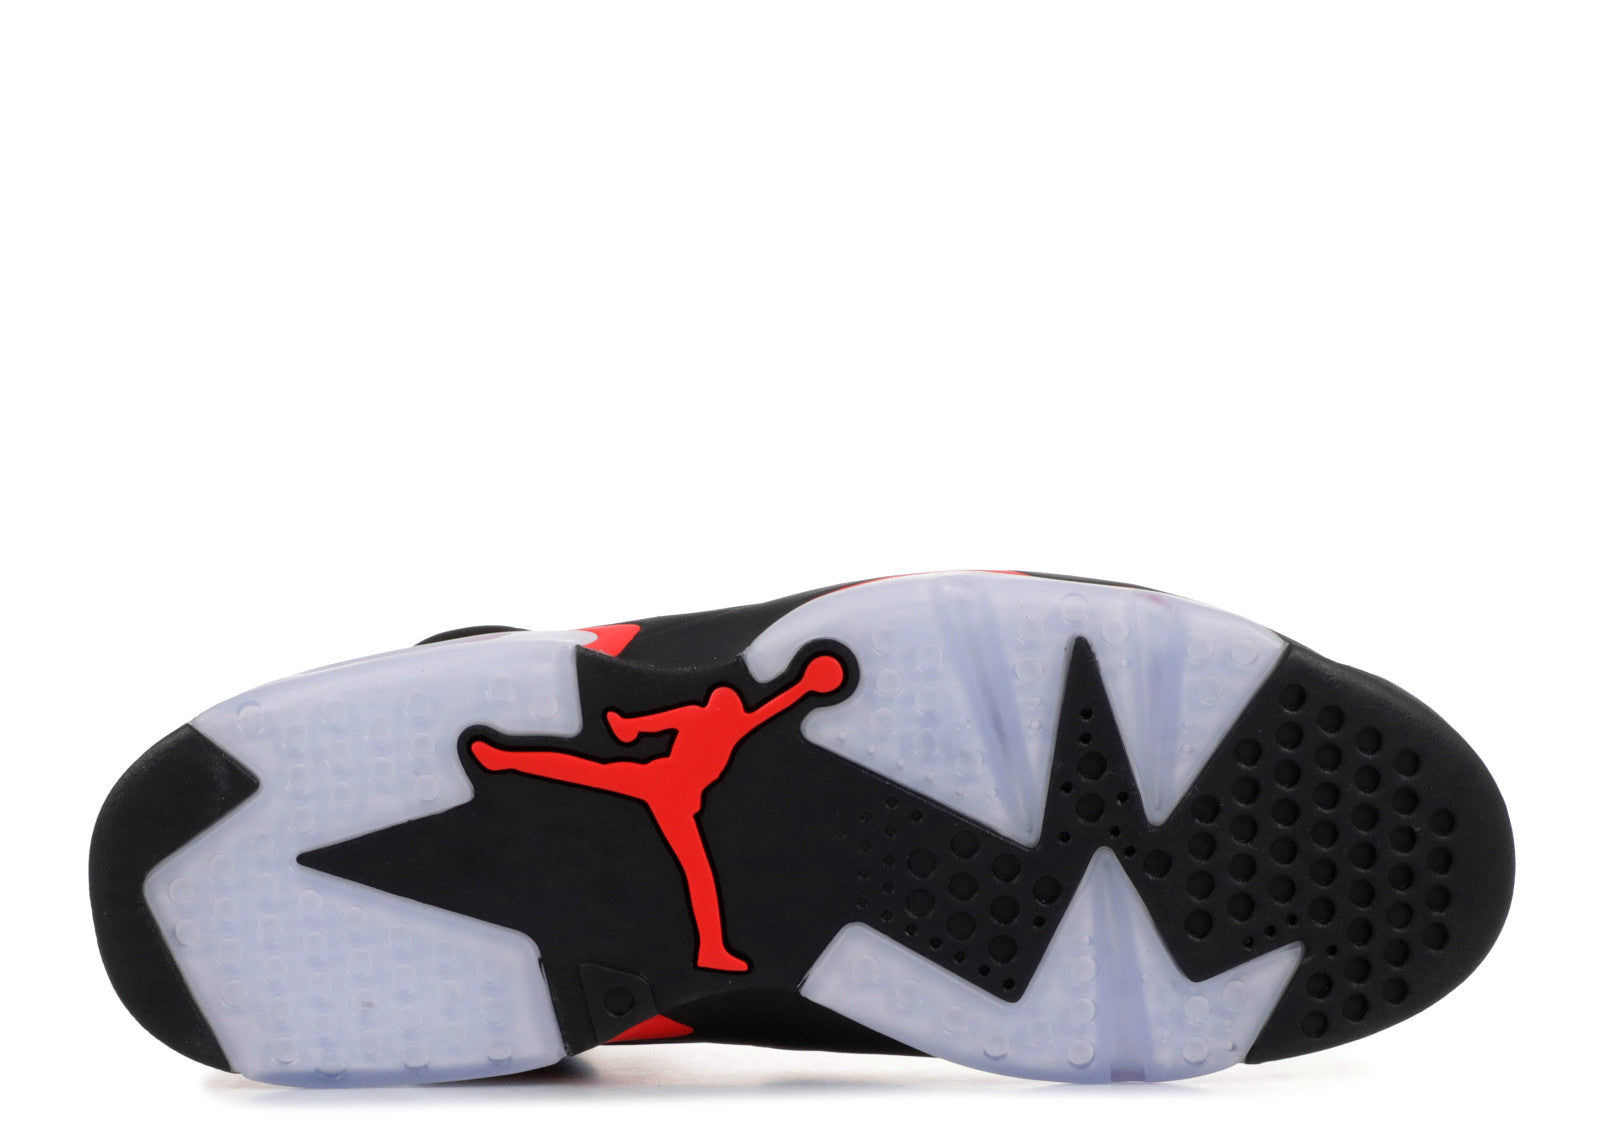 new product 694b3 98425 Nike Air Jordan 6 Retro  Black Infrared  2019